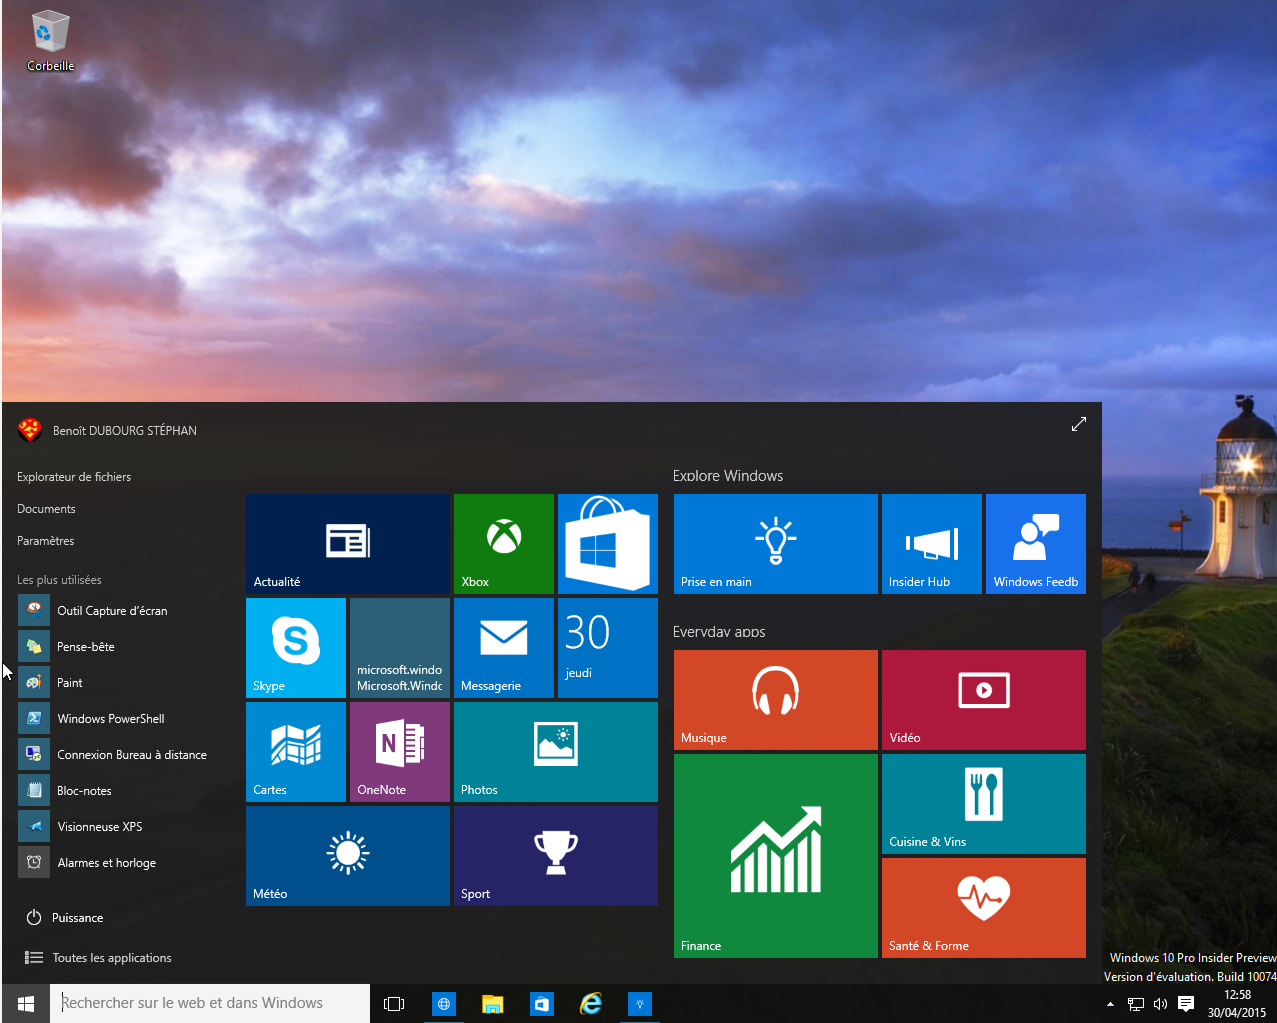 Illustration de Windows 10 Pro Insider Preview